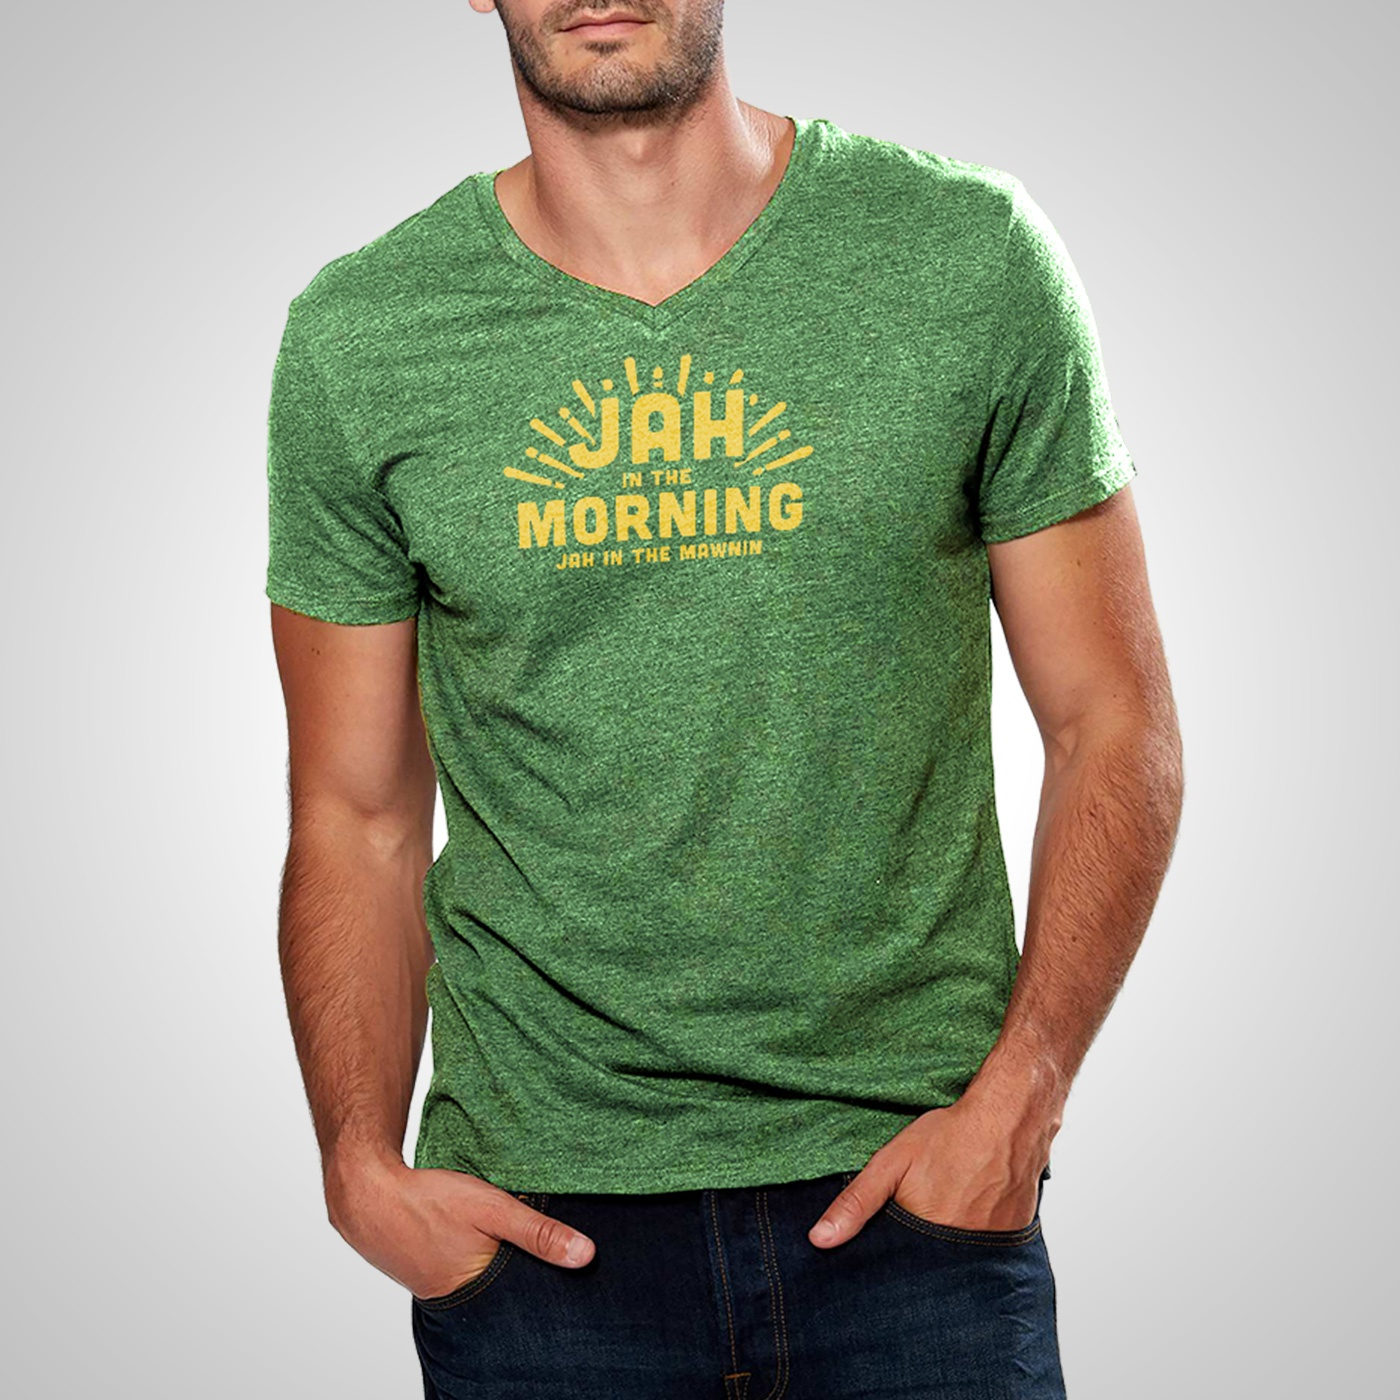 Jah in the Morning Tshirt